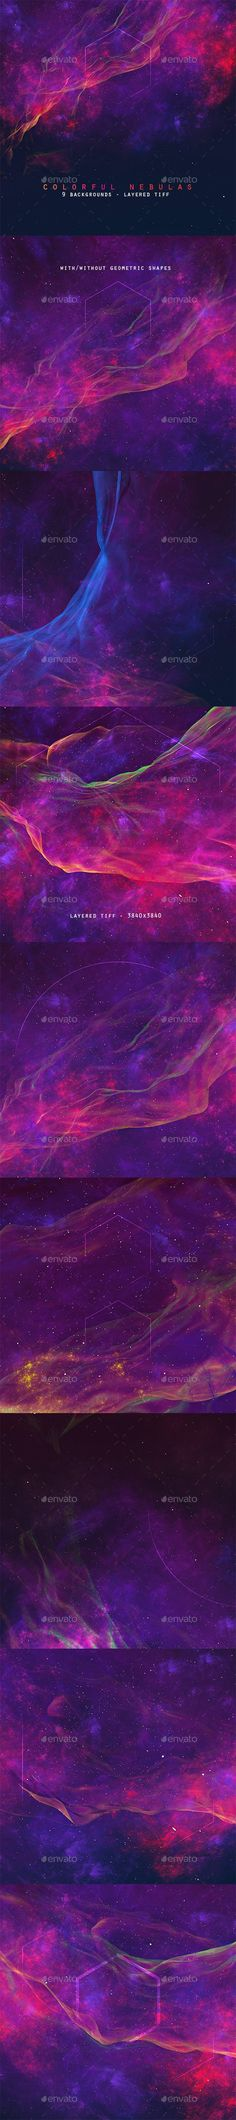 Space Nebulas Background Set by Abdelrahman_El-masry | GraphicRiver